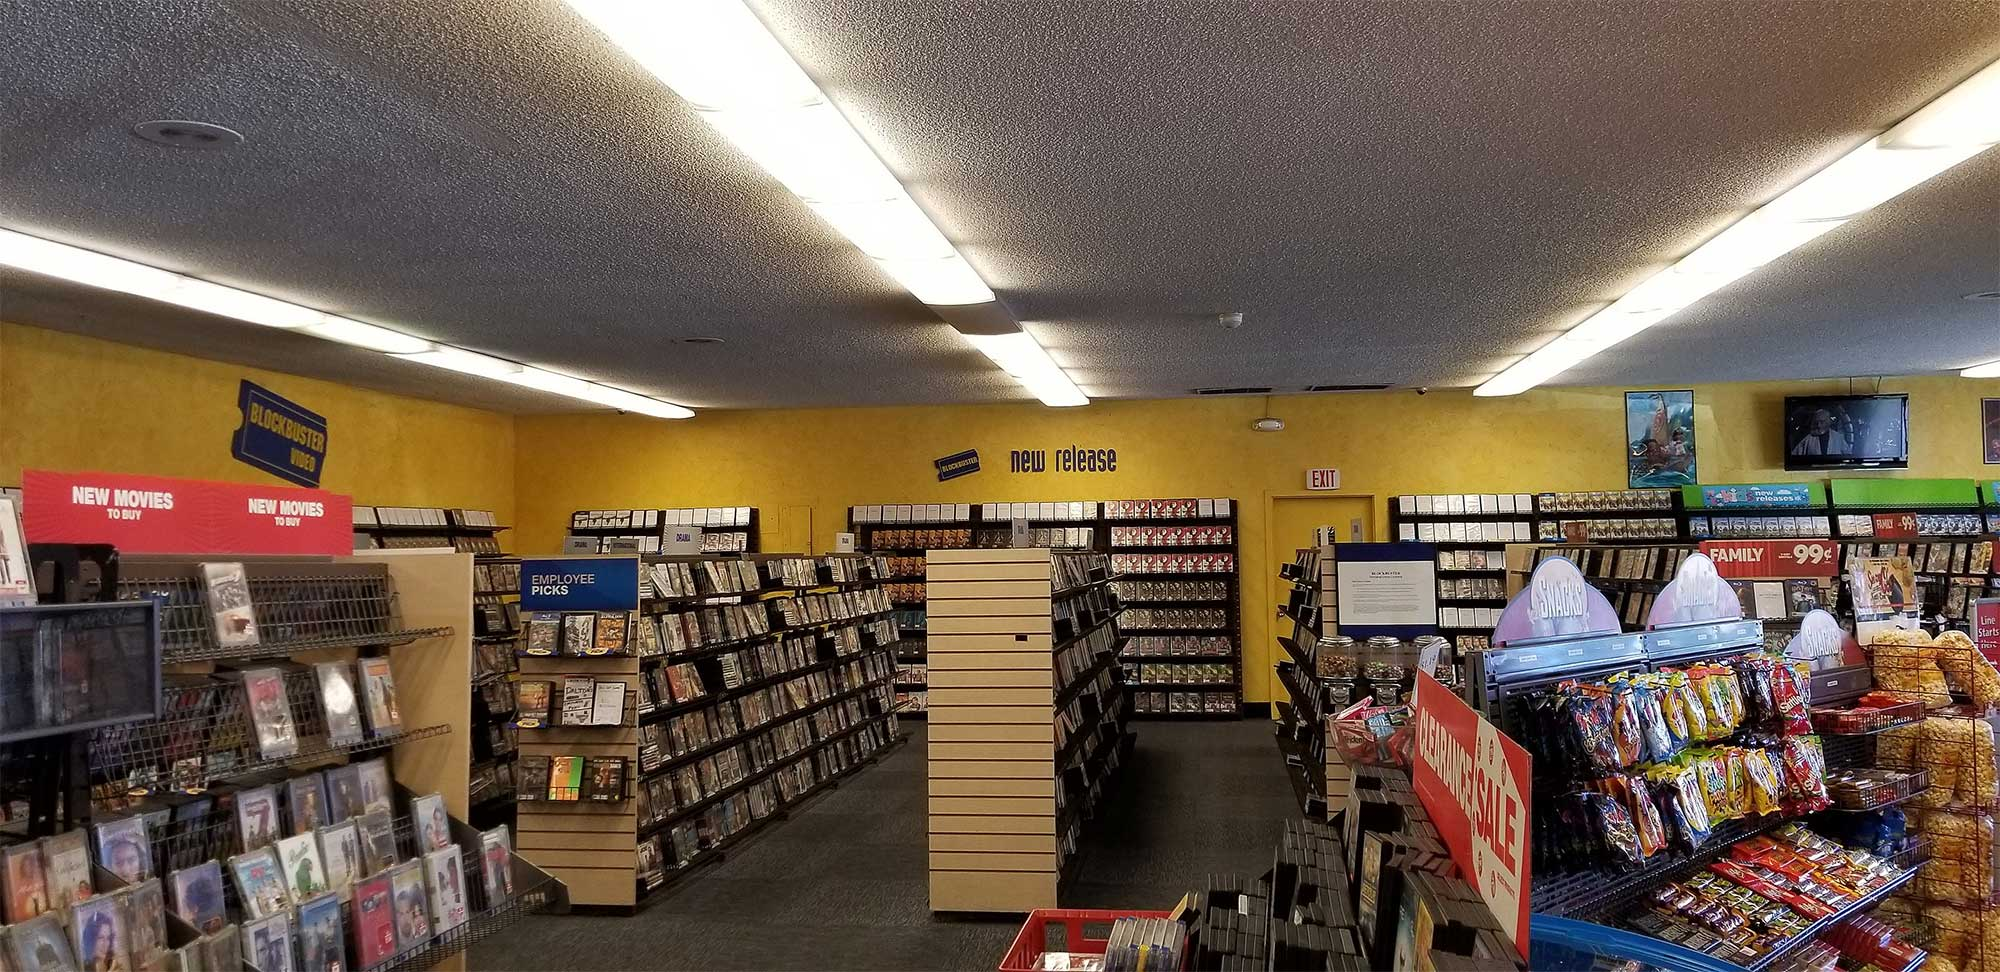 Inside the Last Remaining Blockbuster Video